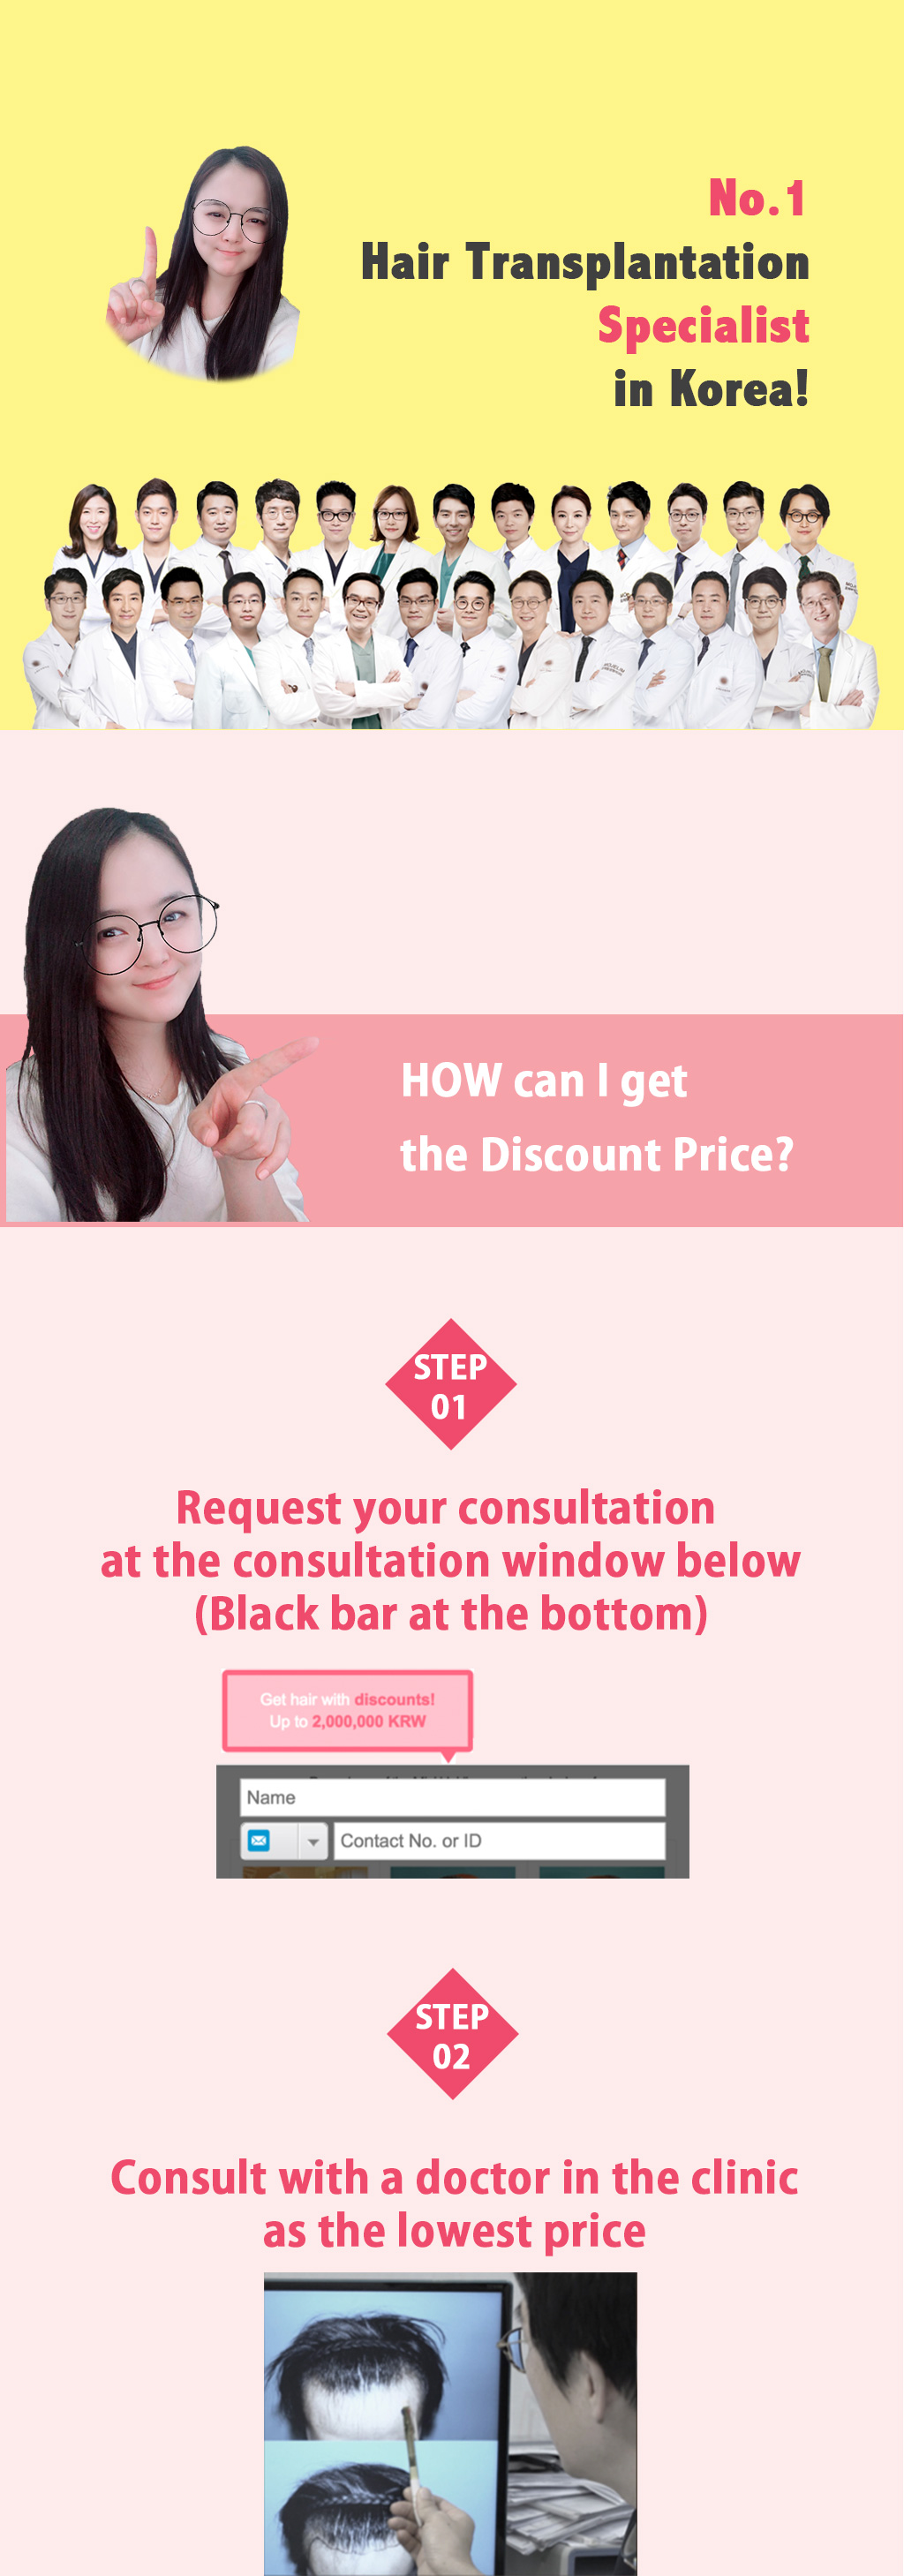 MOJELIM hair surgery x all about mei special offer / the hair specialists in Korea / the lowest price in all about mei